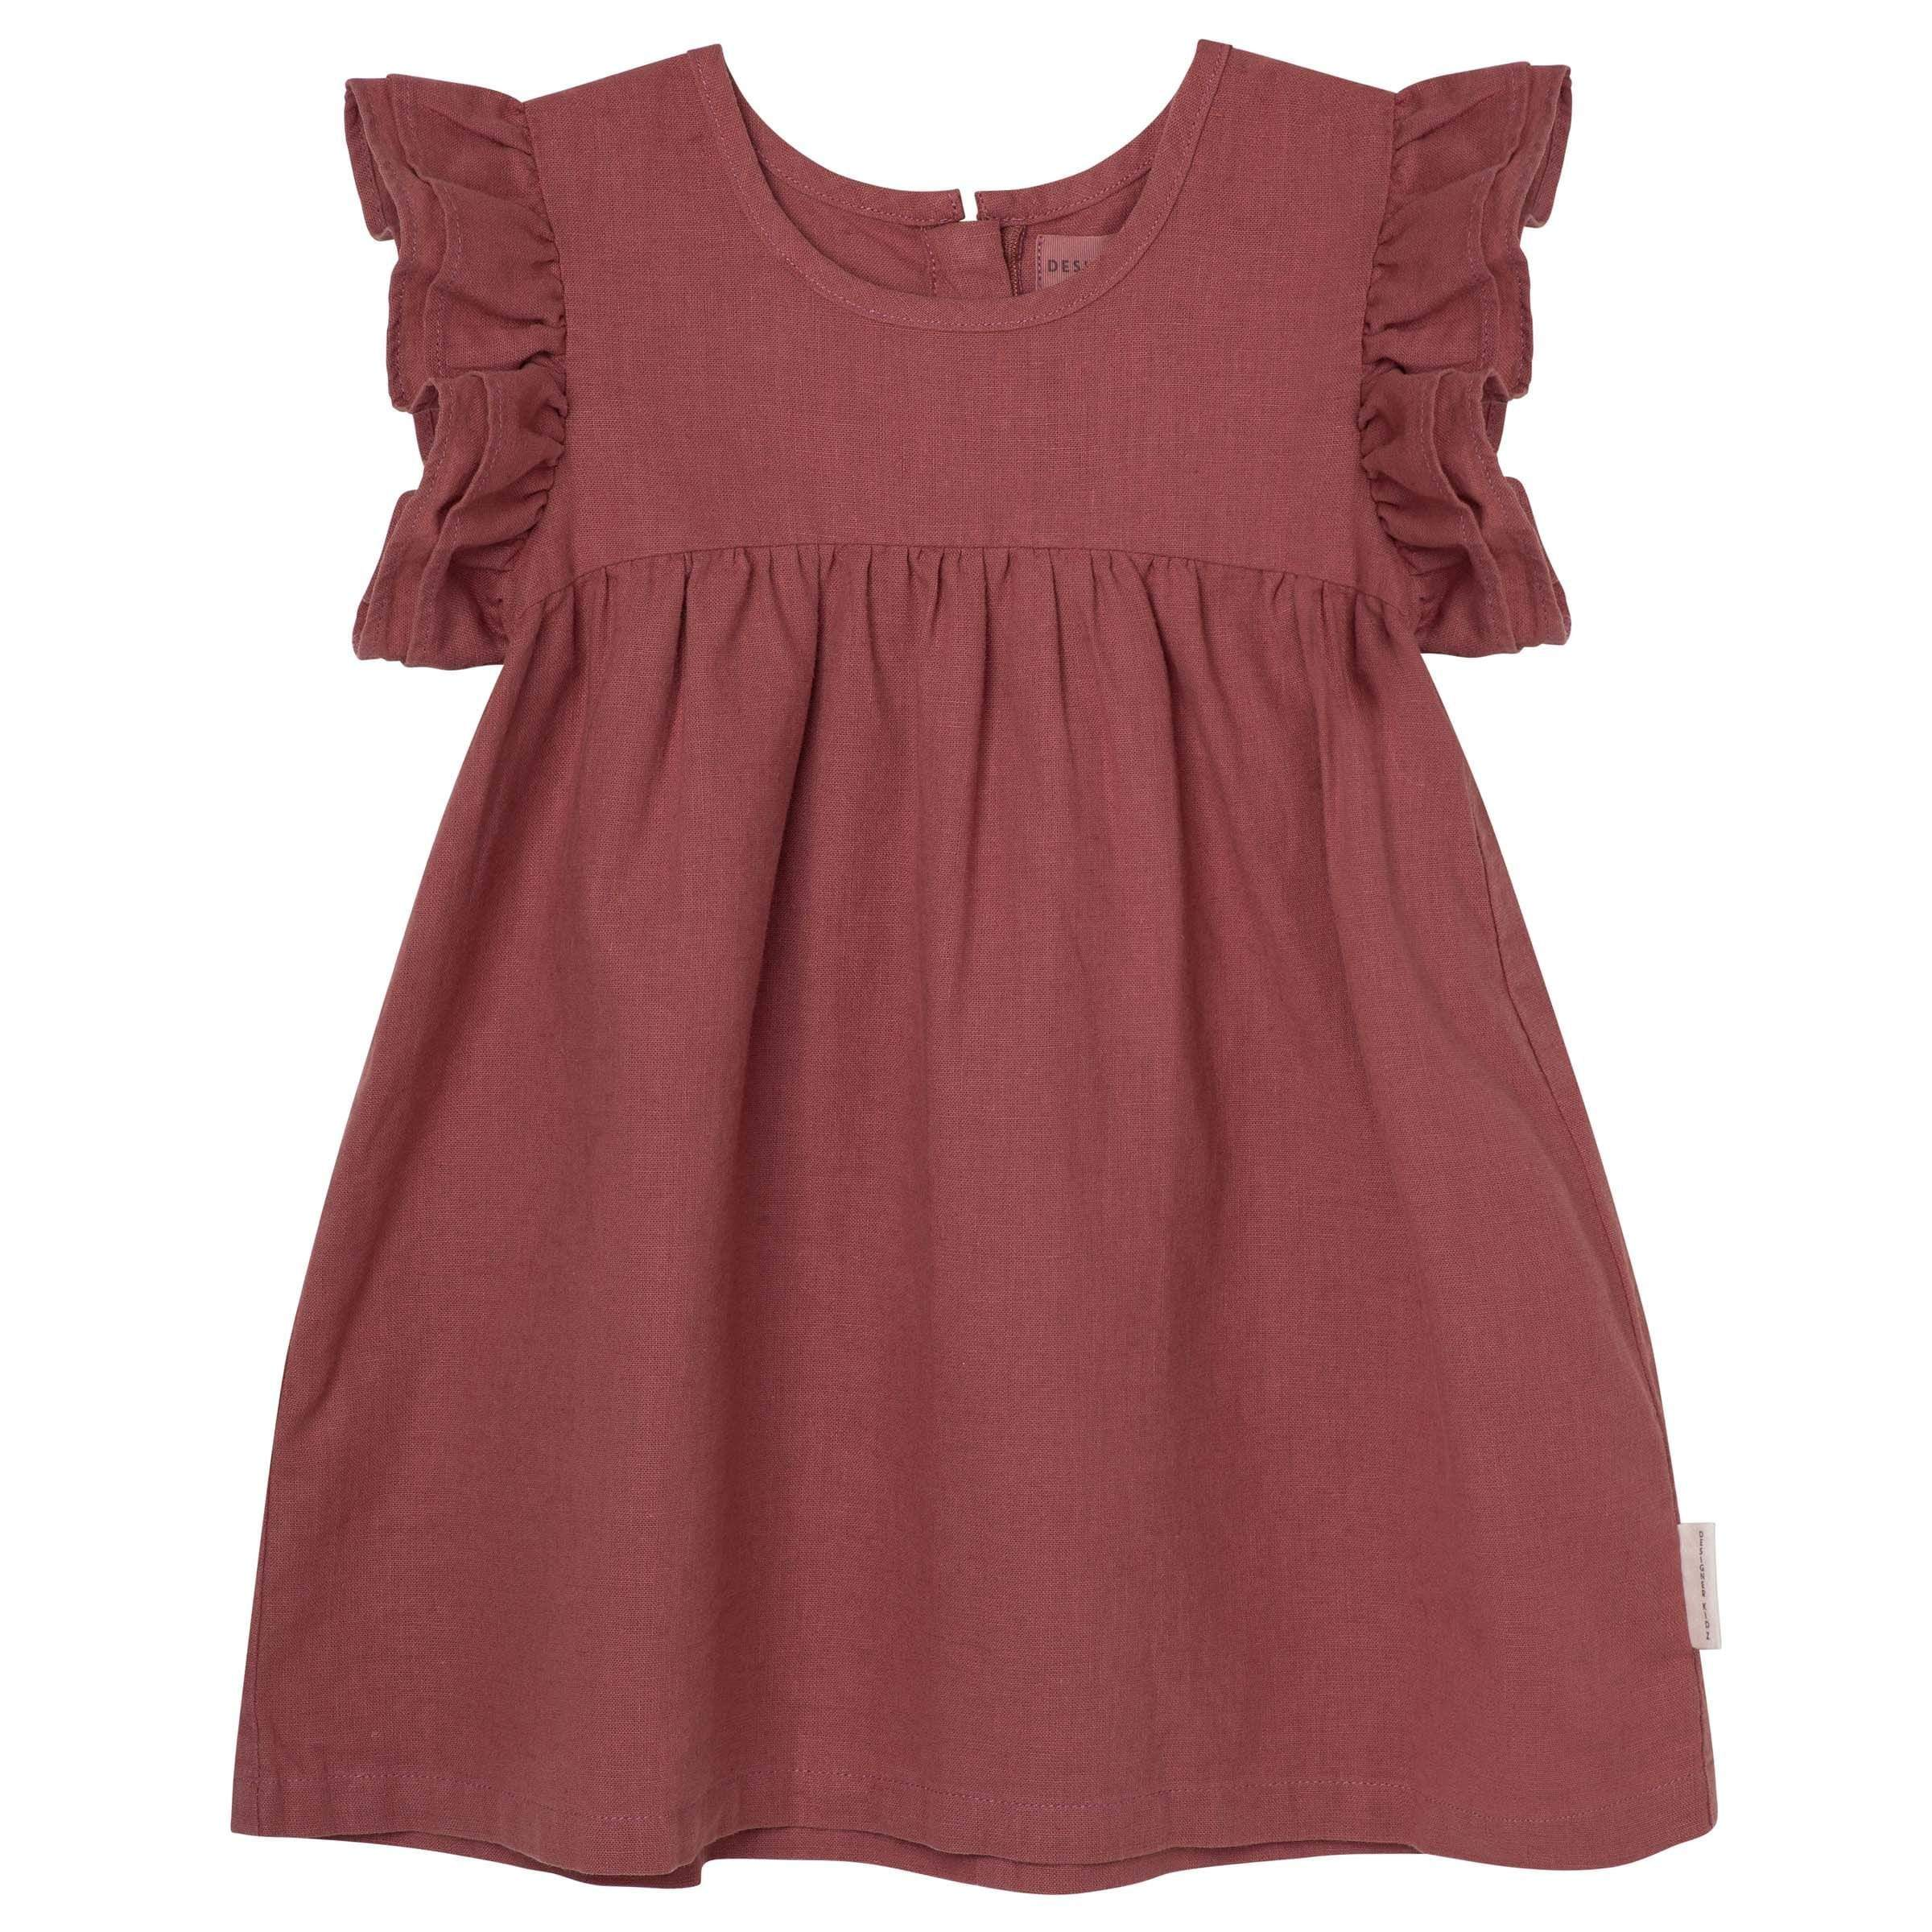 Raspberry Lane Boutique Frill Sleeve Dress - Redwood